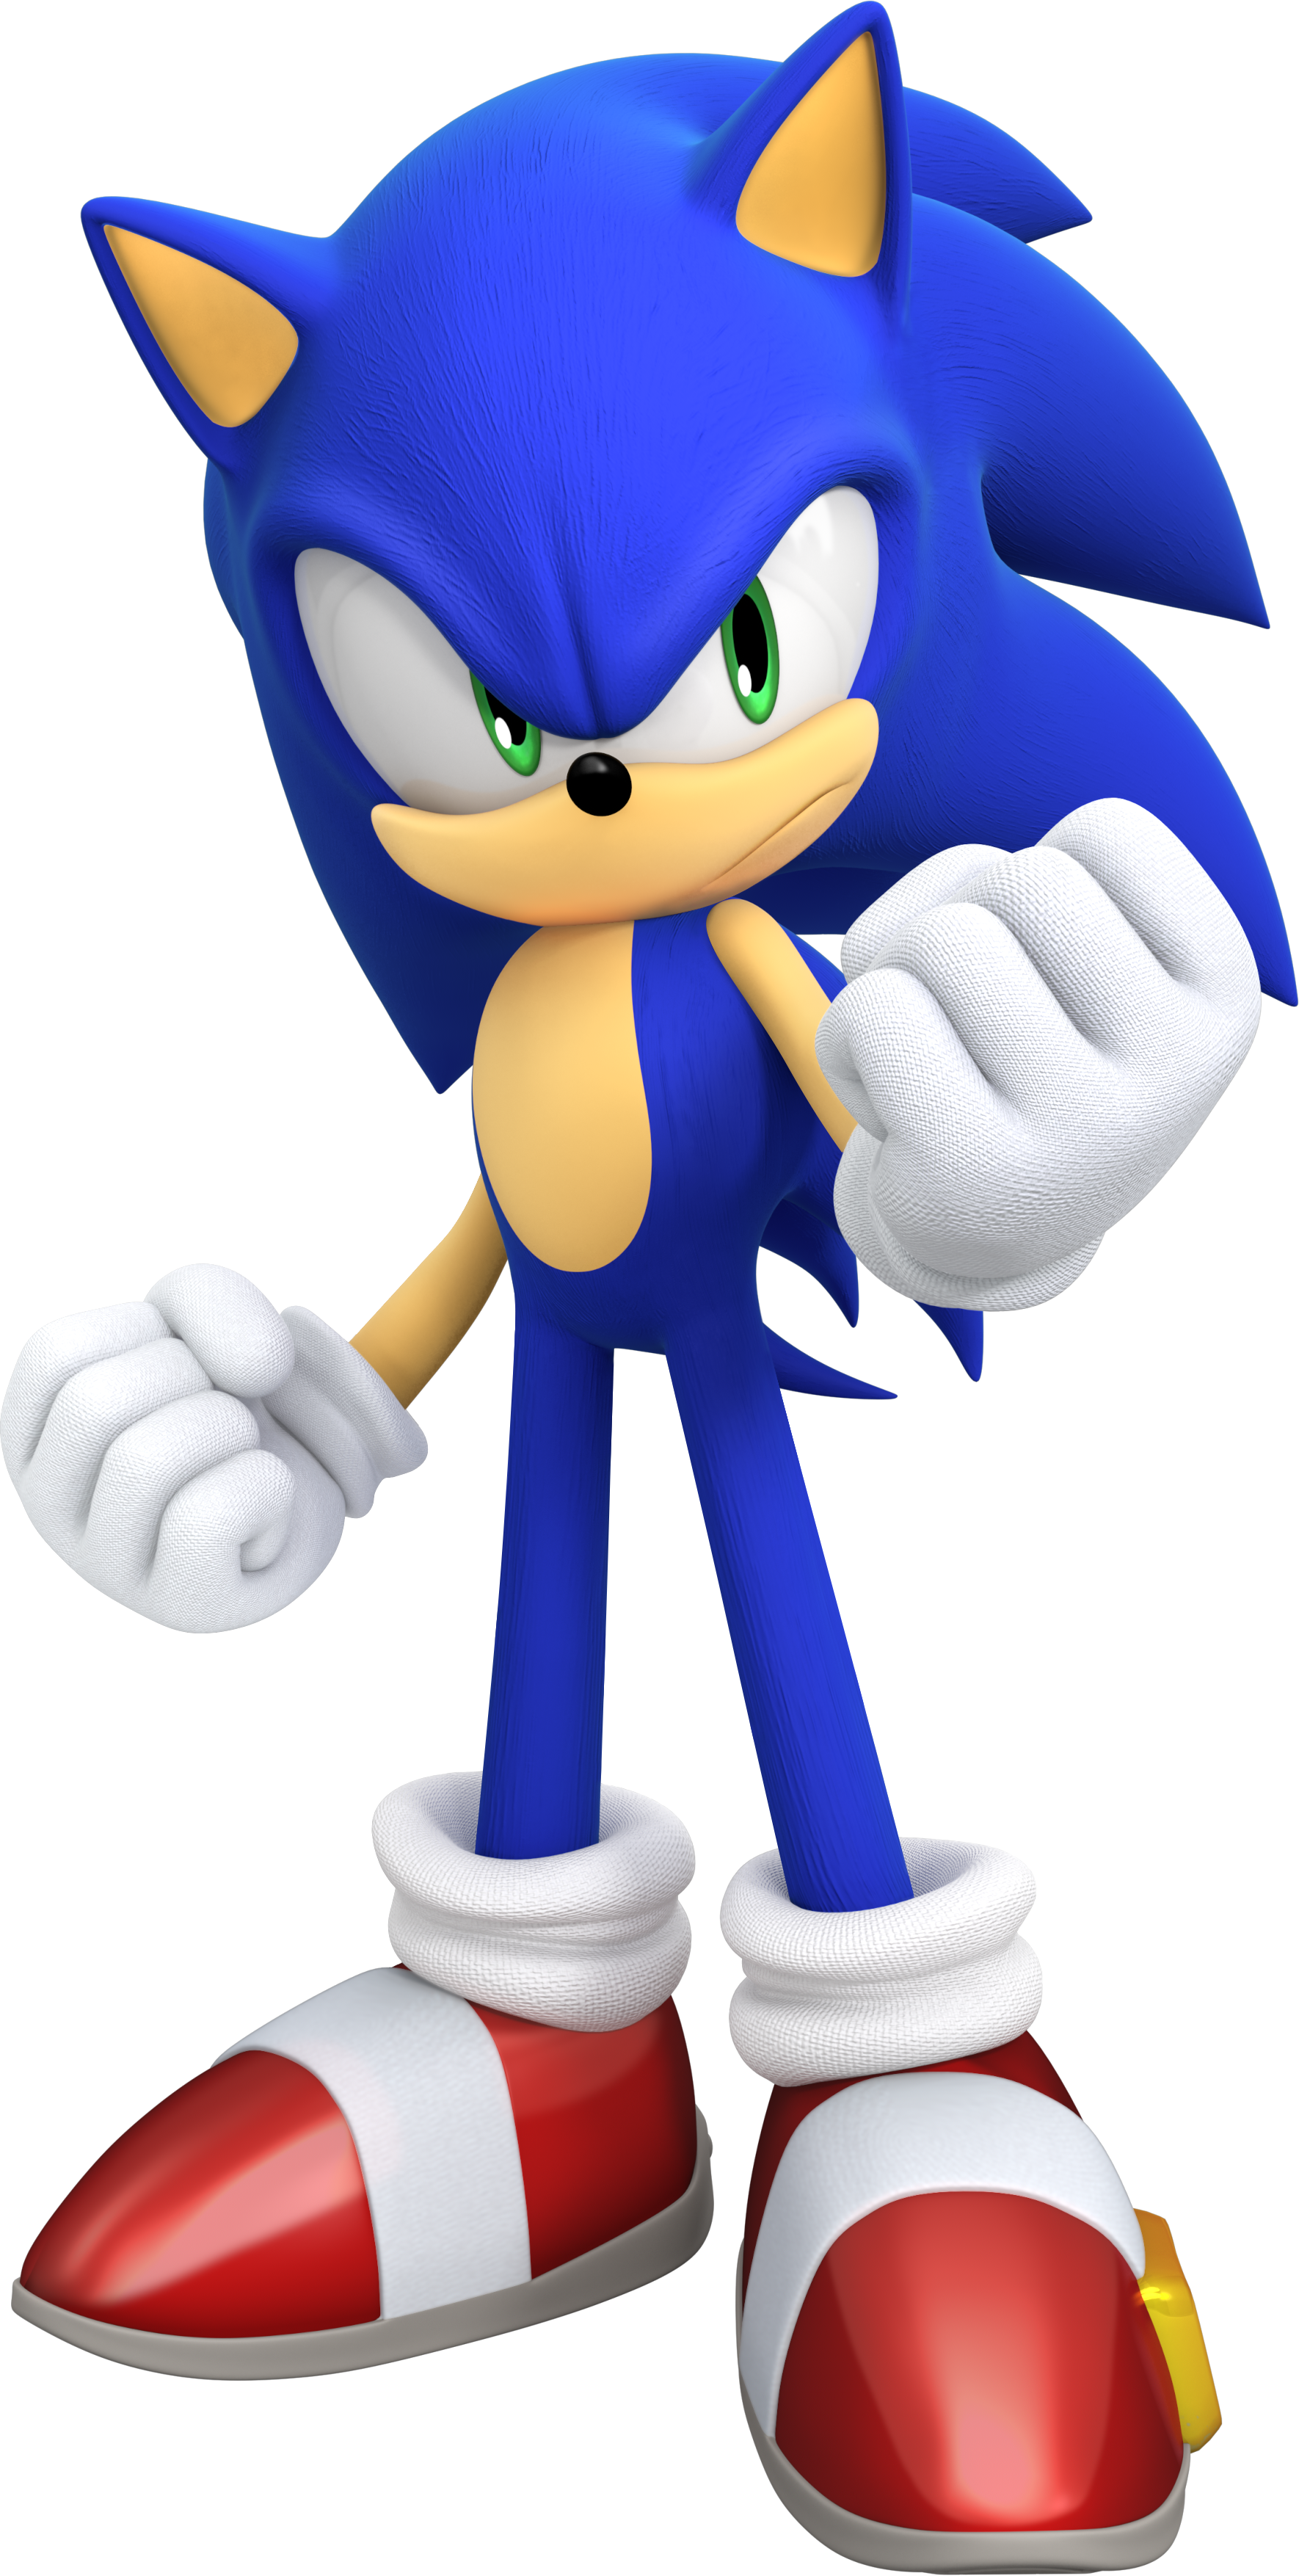 image transparent download Sonic the Hedgehog